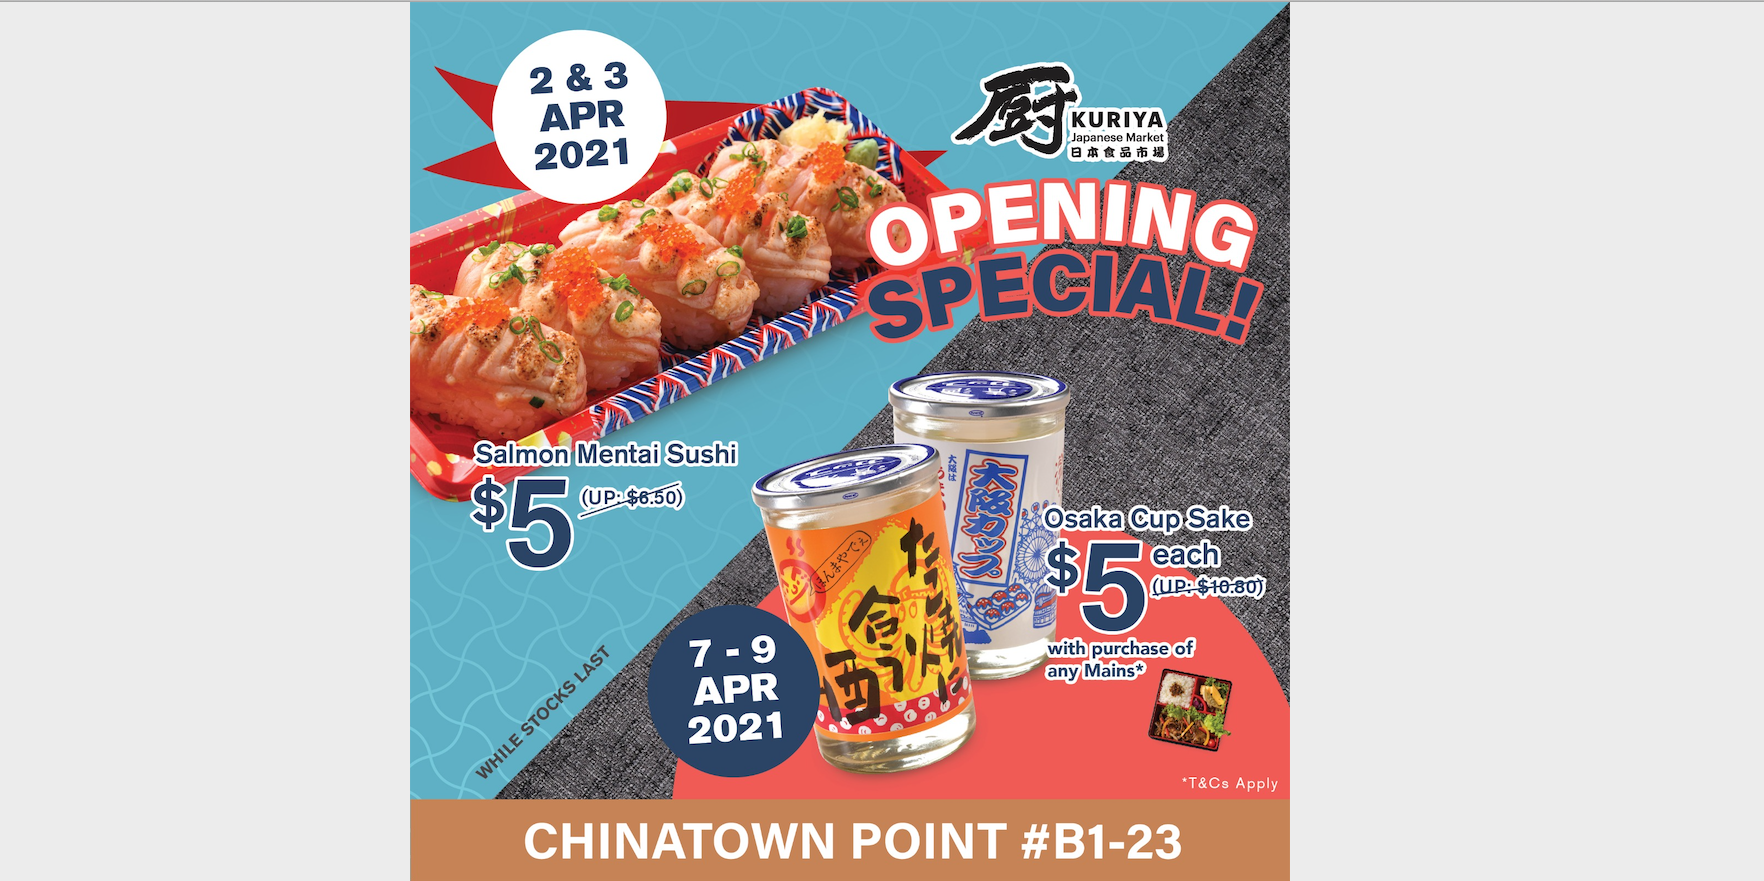 Kuriya Japanese Market Opens 11th Outlet at Chinatown Point with $5 Sushi & Sake Deals!